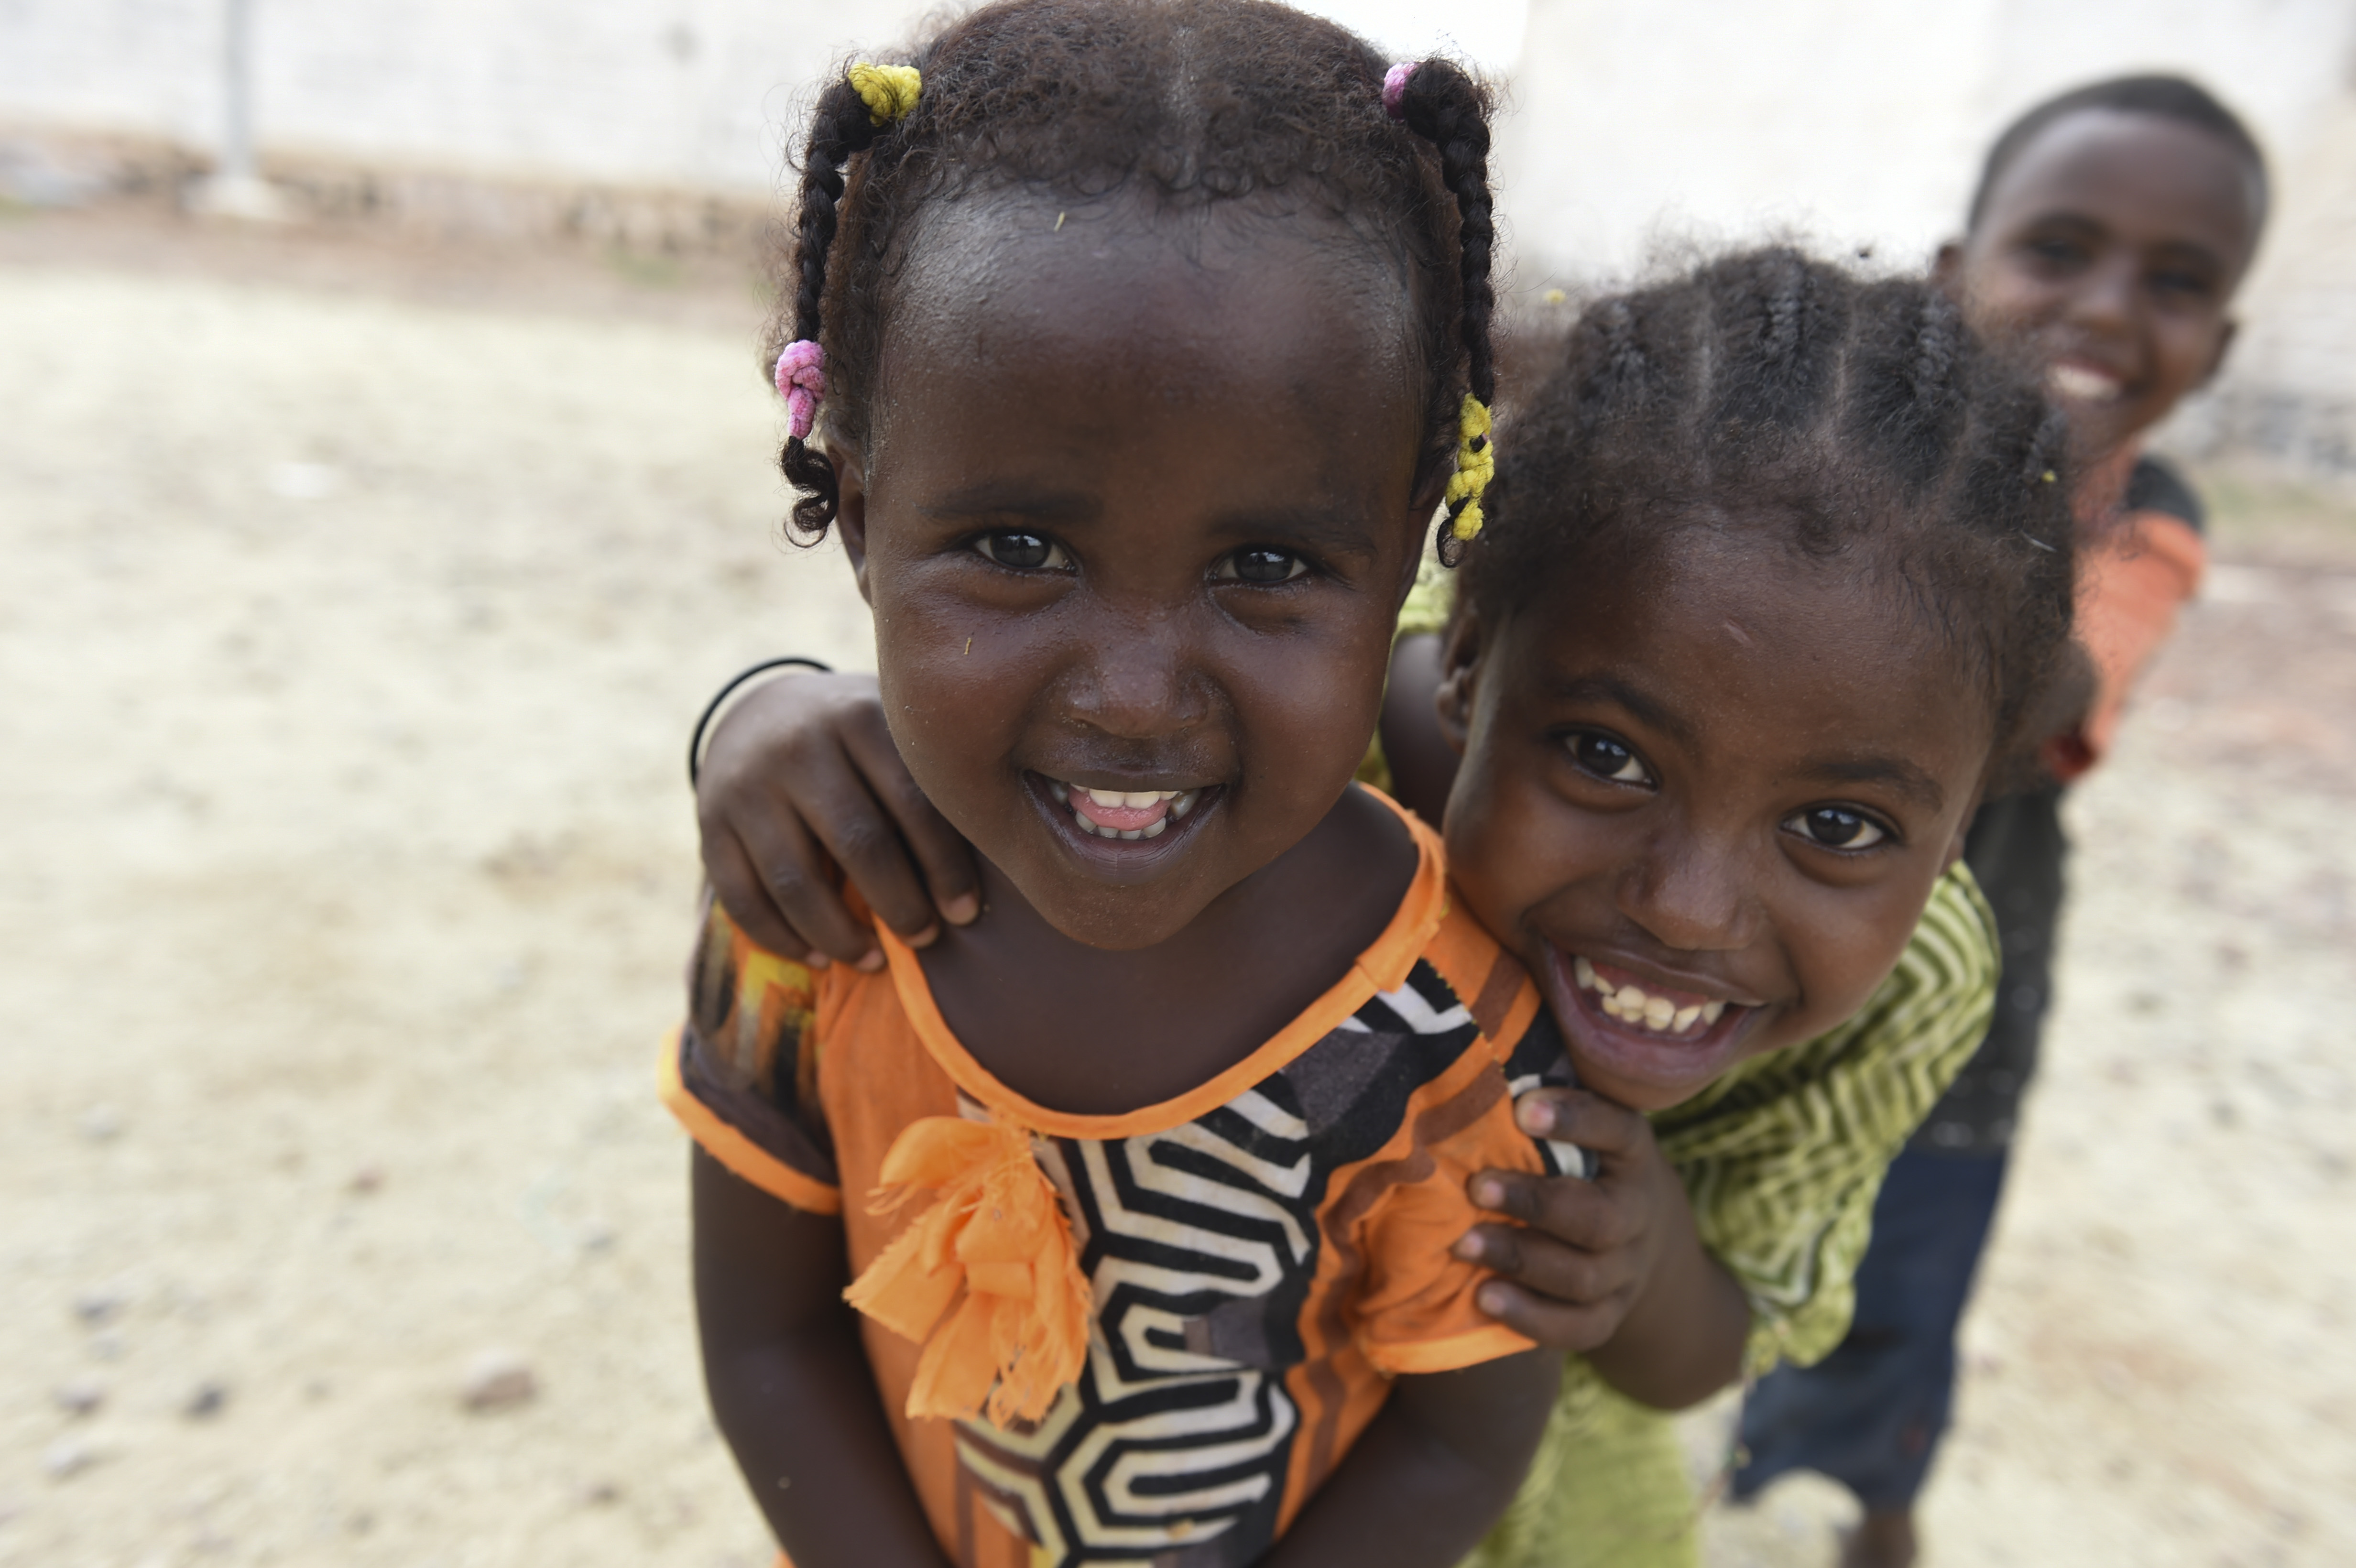 Children pose for a picture in Holhol, Djibouti, May 18, 2017. The 411th Civil Affairs Battalion, Bravo Company, Civil Affairs Team 3, travelled to the village of Holhol to conduct a counter-violent-extremism assessment in support of the Combined Joint Task Force- Horn of Africa's effort to neutralize violent extremist organizations in the region to create a stable, secure environment in East Africa. (U.S. Air Force Photo by Eboni Prince)